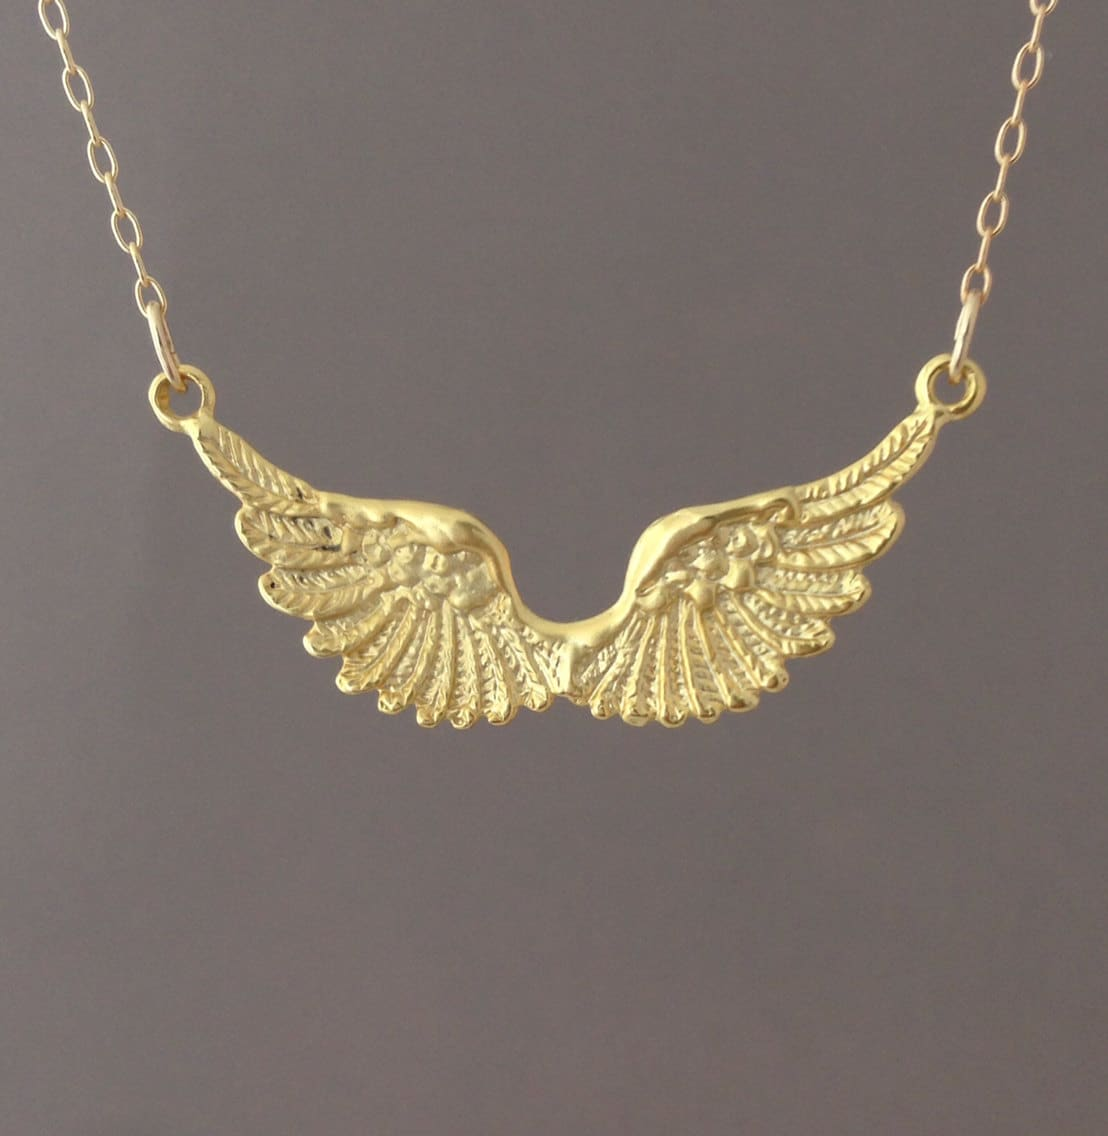 zm sterling silver kayoutlet wing mv necklace kayoutletstore angel accent en diamond